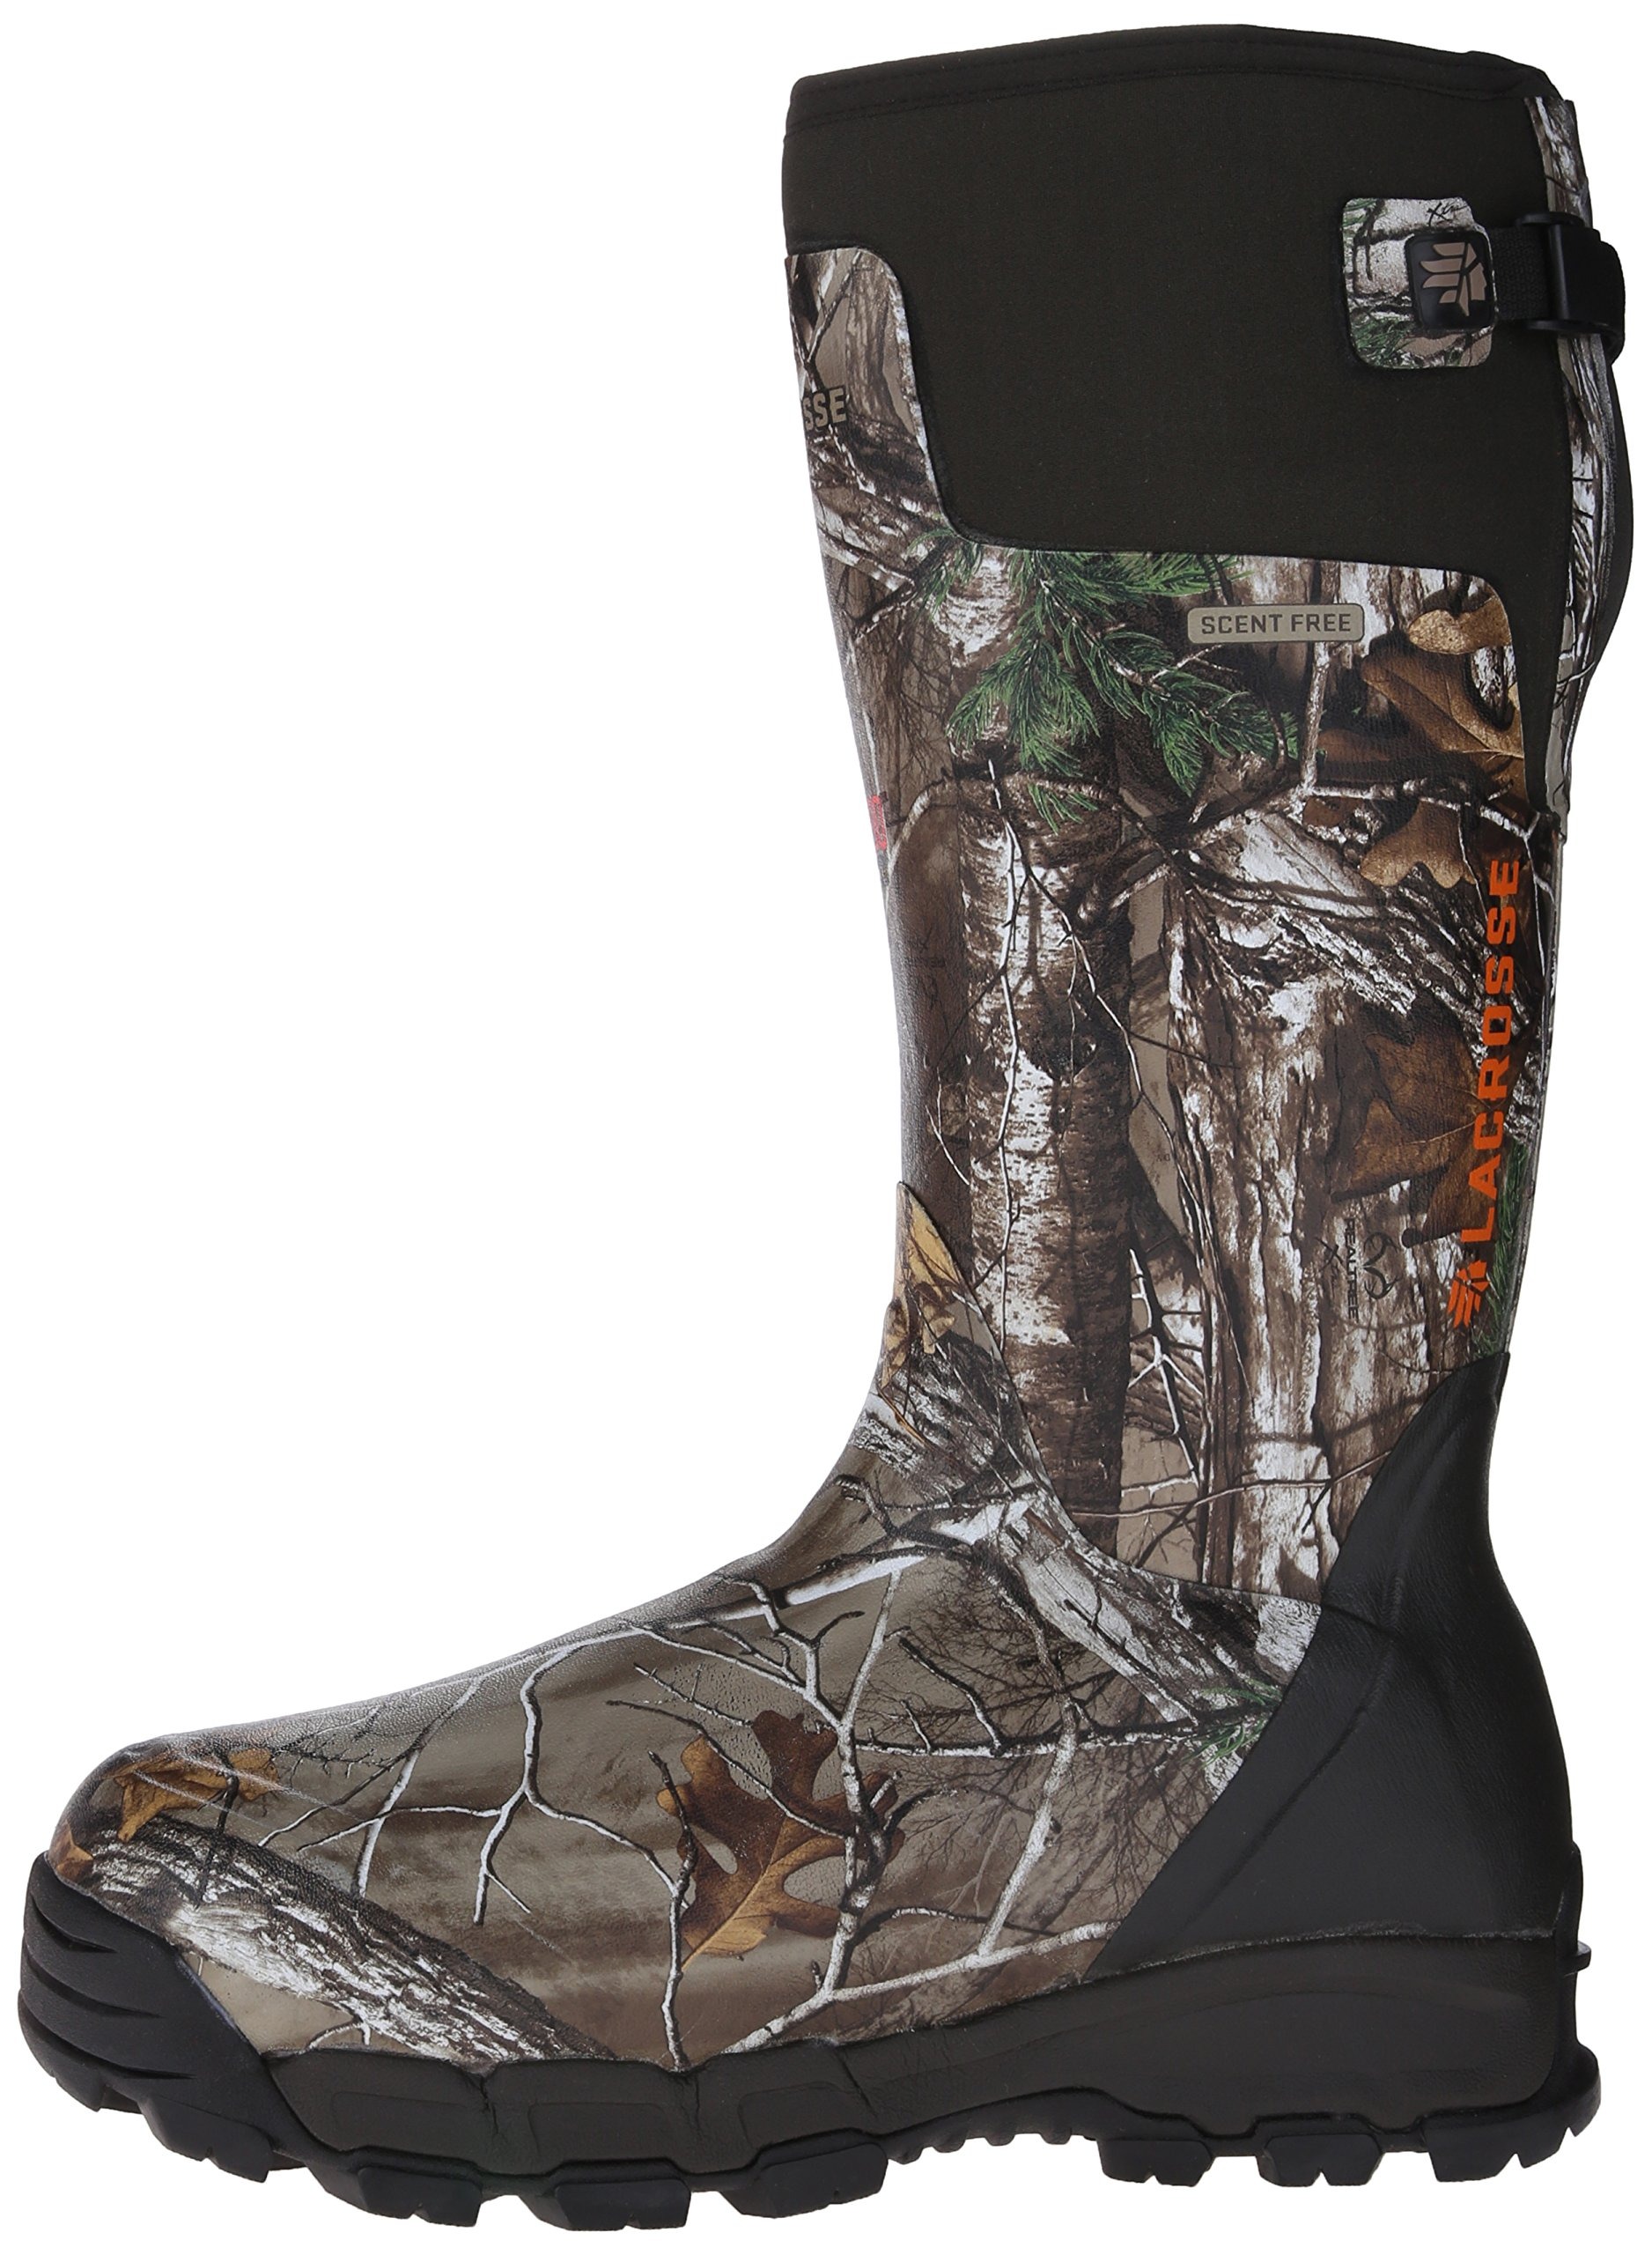 "LaCrosse Men's Alphaburly Pro 18"" 1600G Hunting Boot,Realtree Xtra,11 M US by Lacrosse (Image #5)"